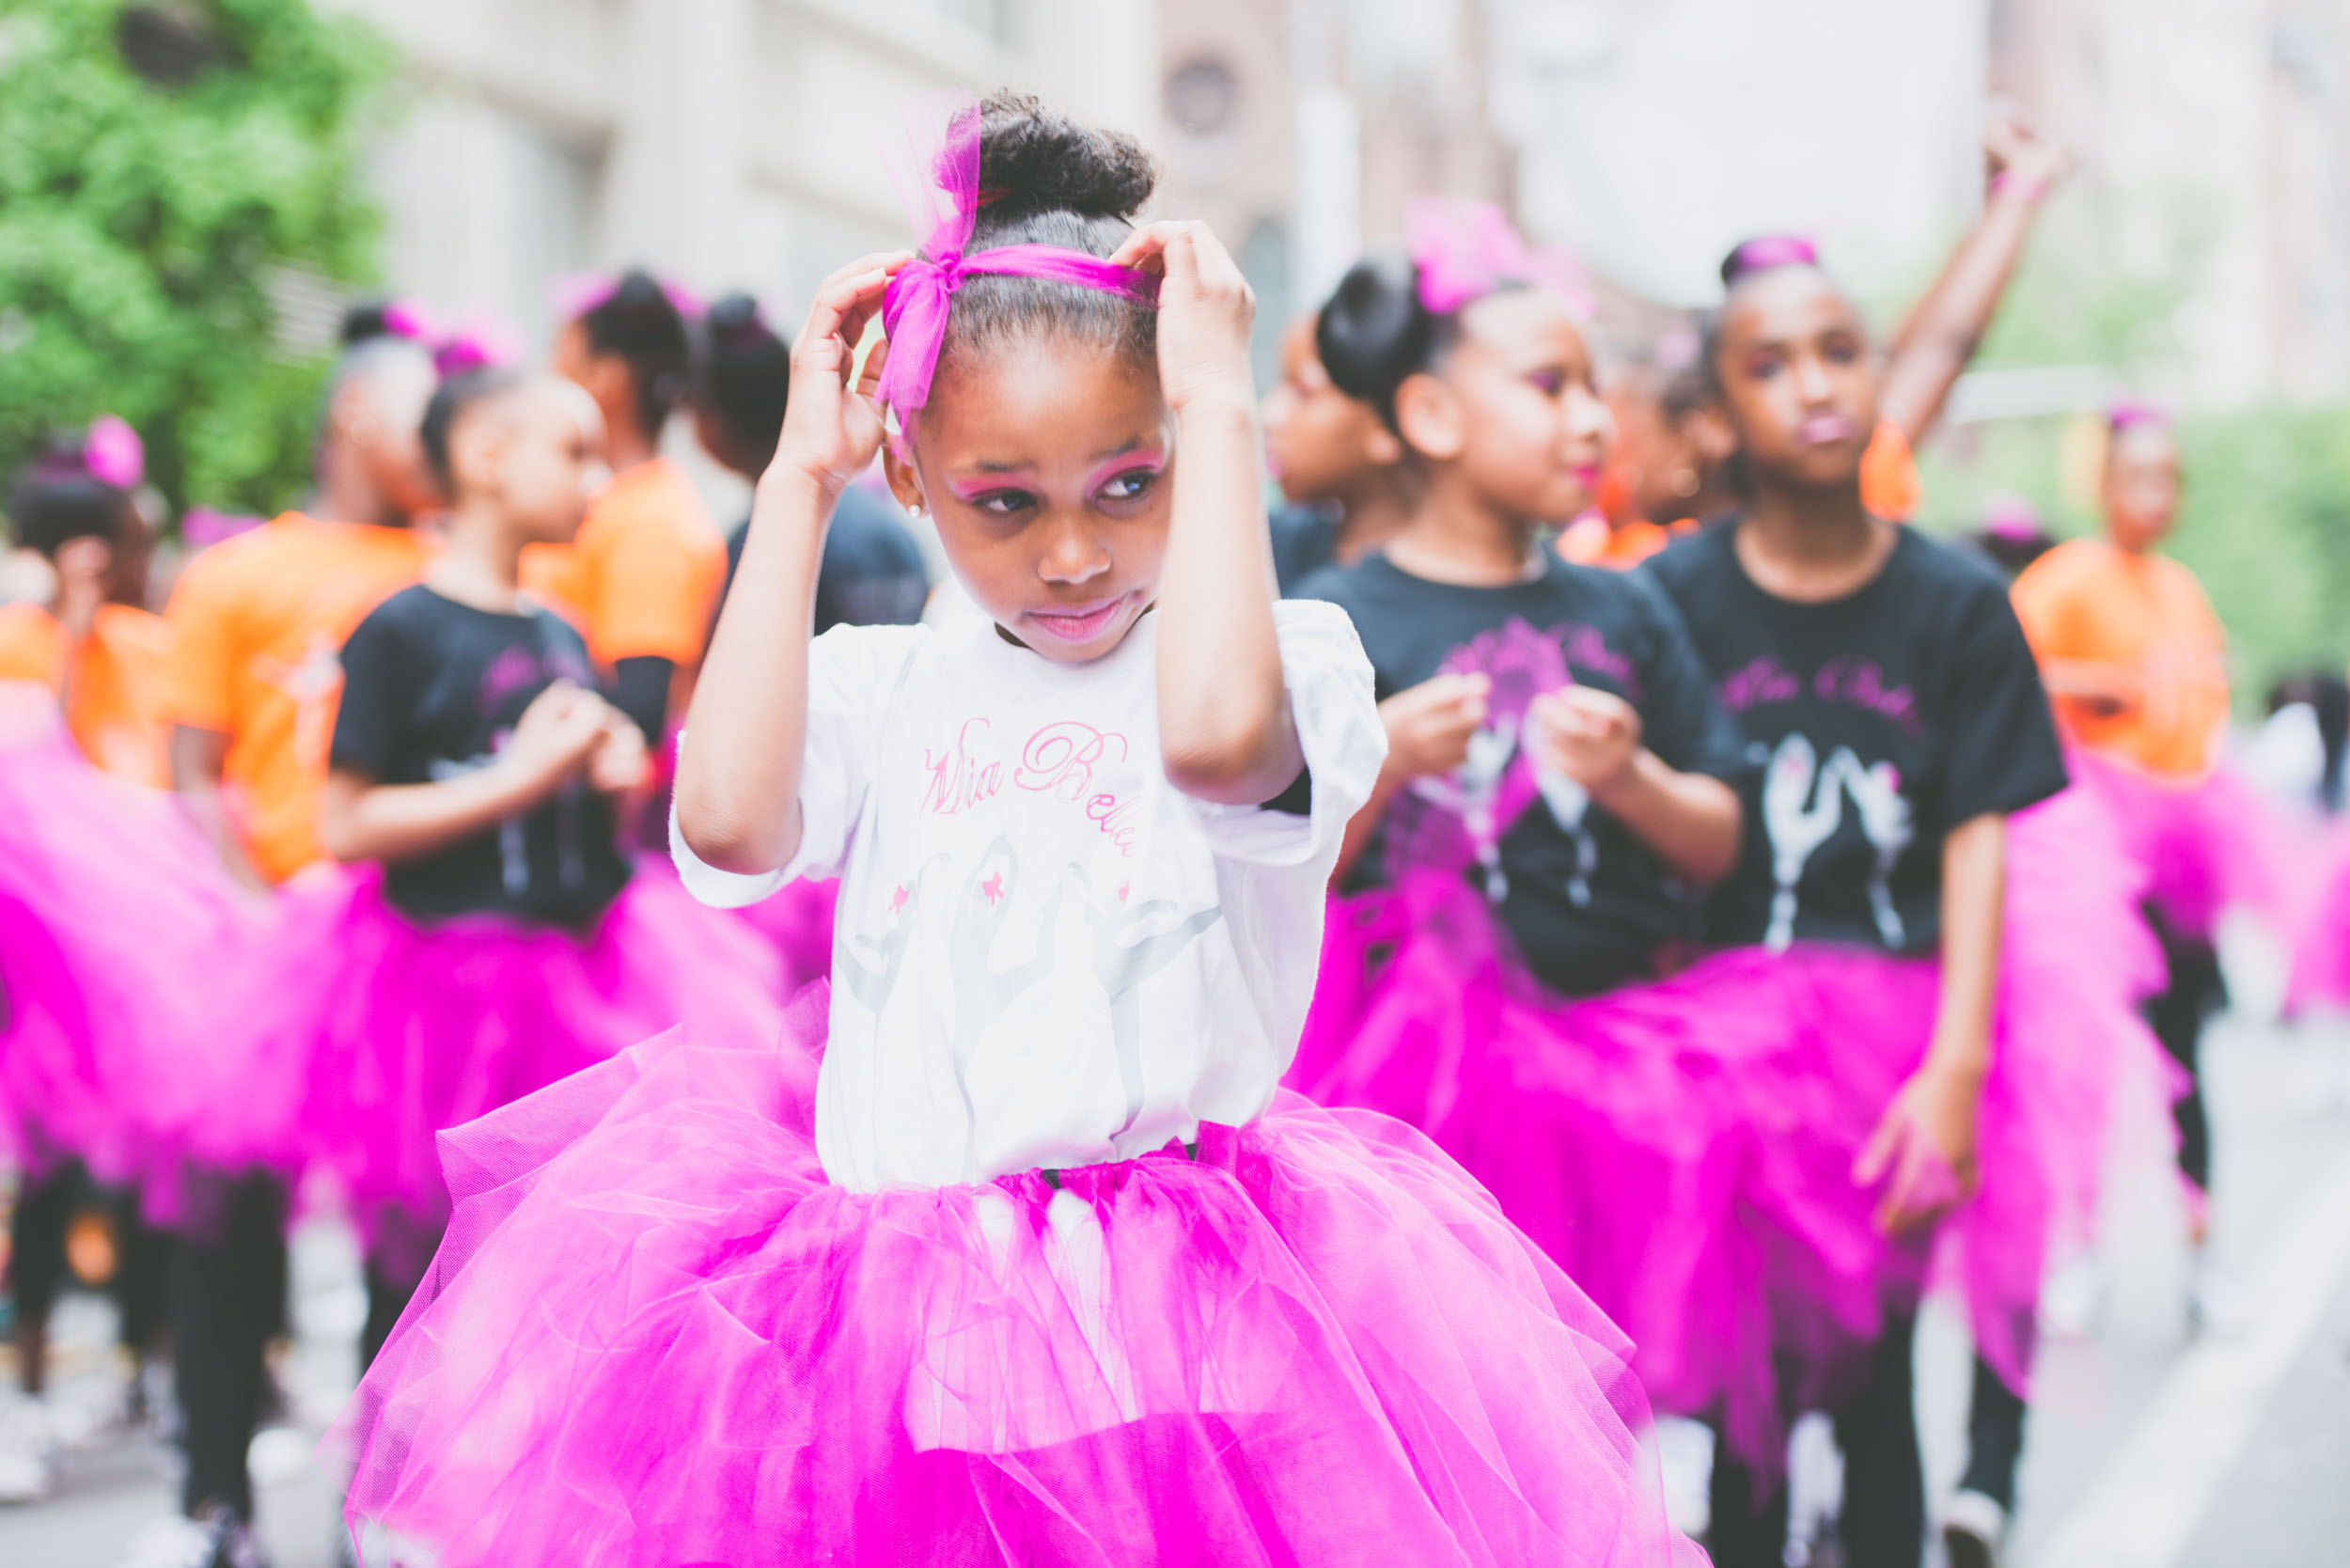 Girl in pink at parade - Current events - Photo credit Nicola Bailey.jpg